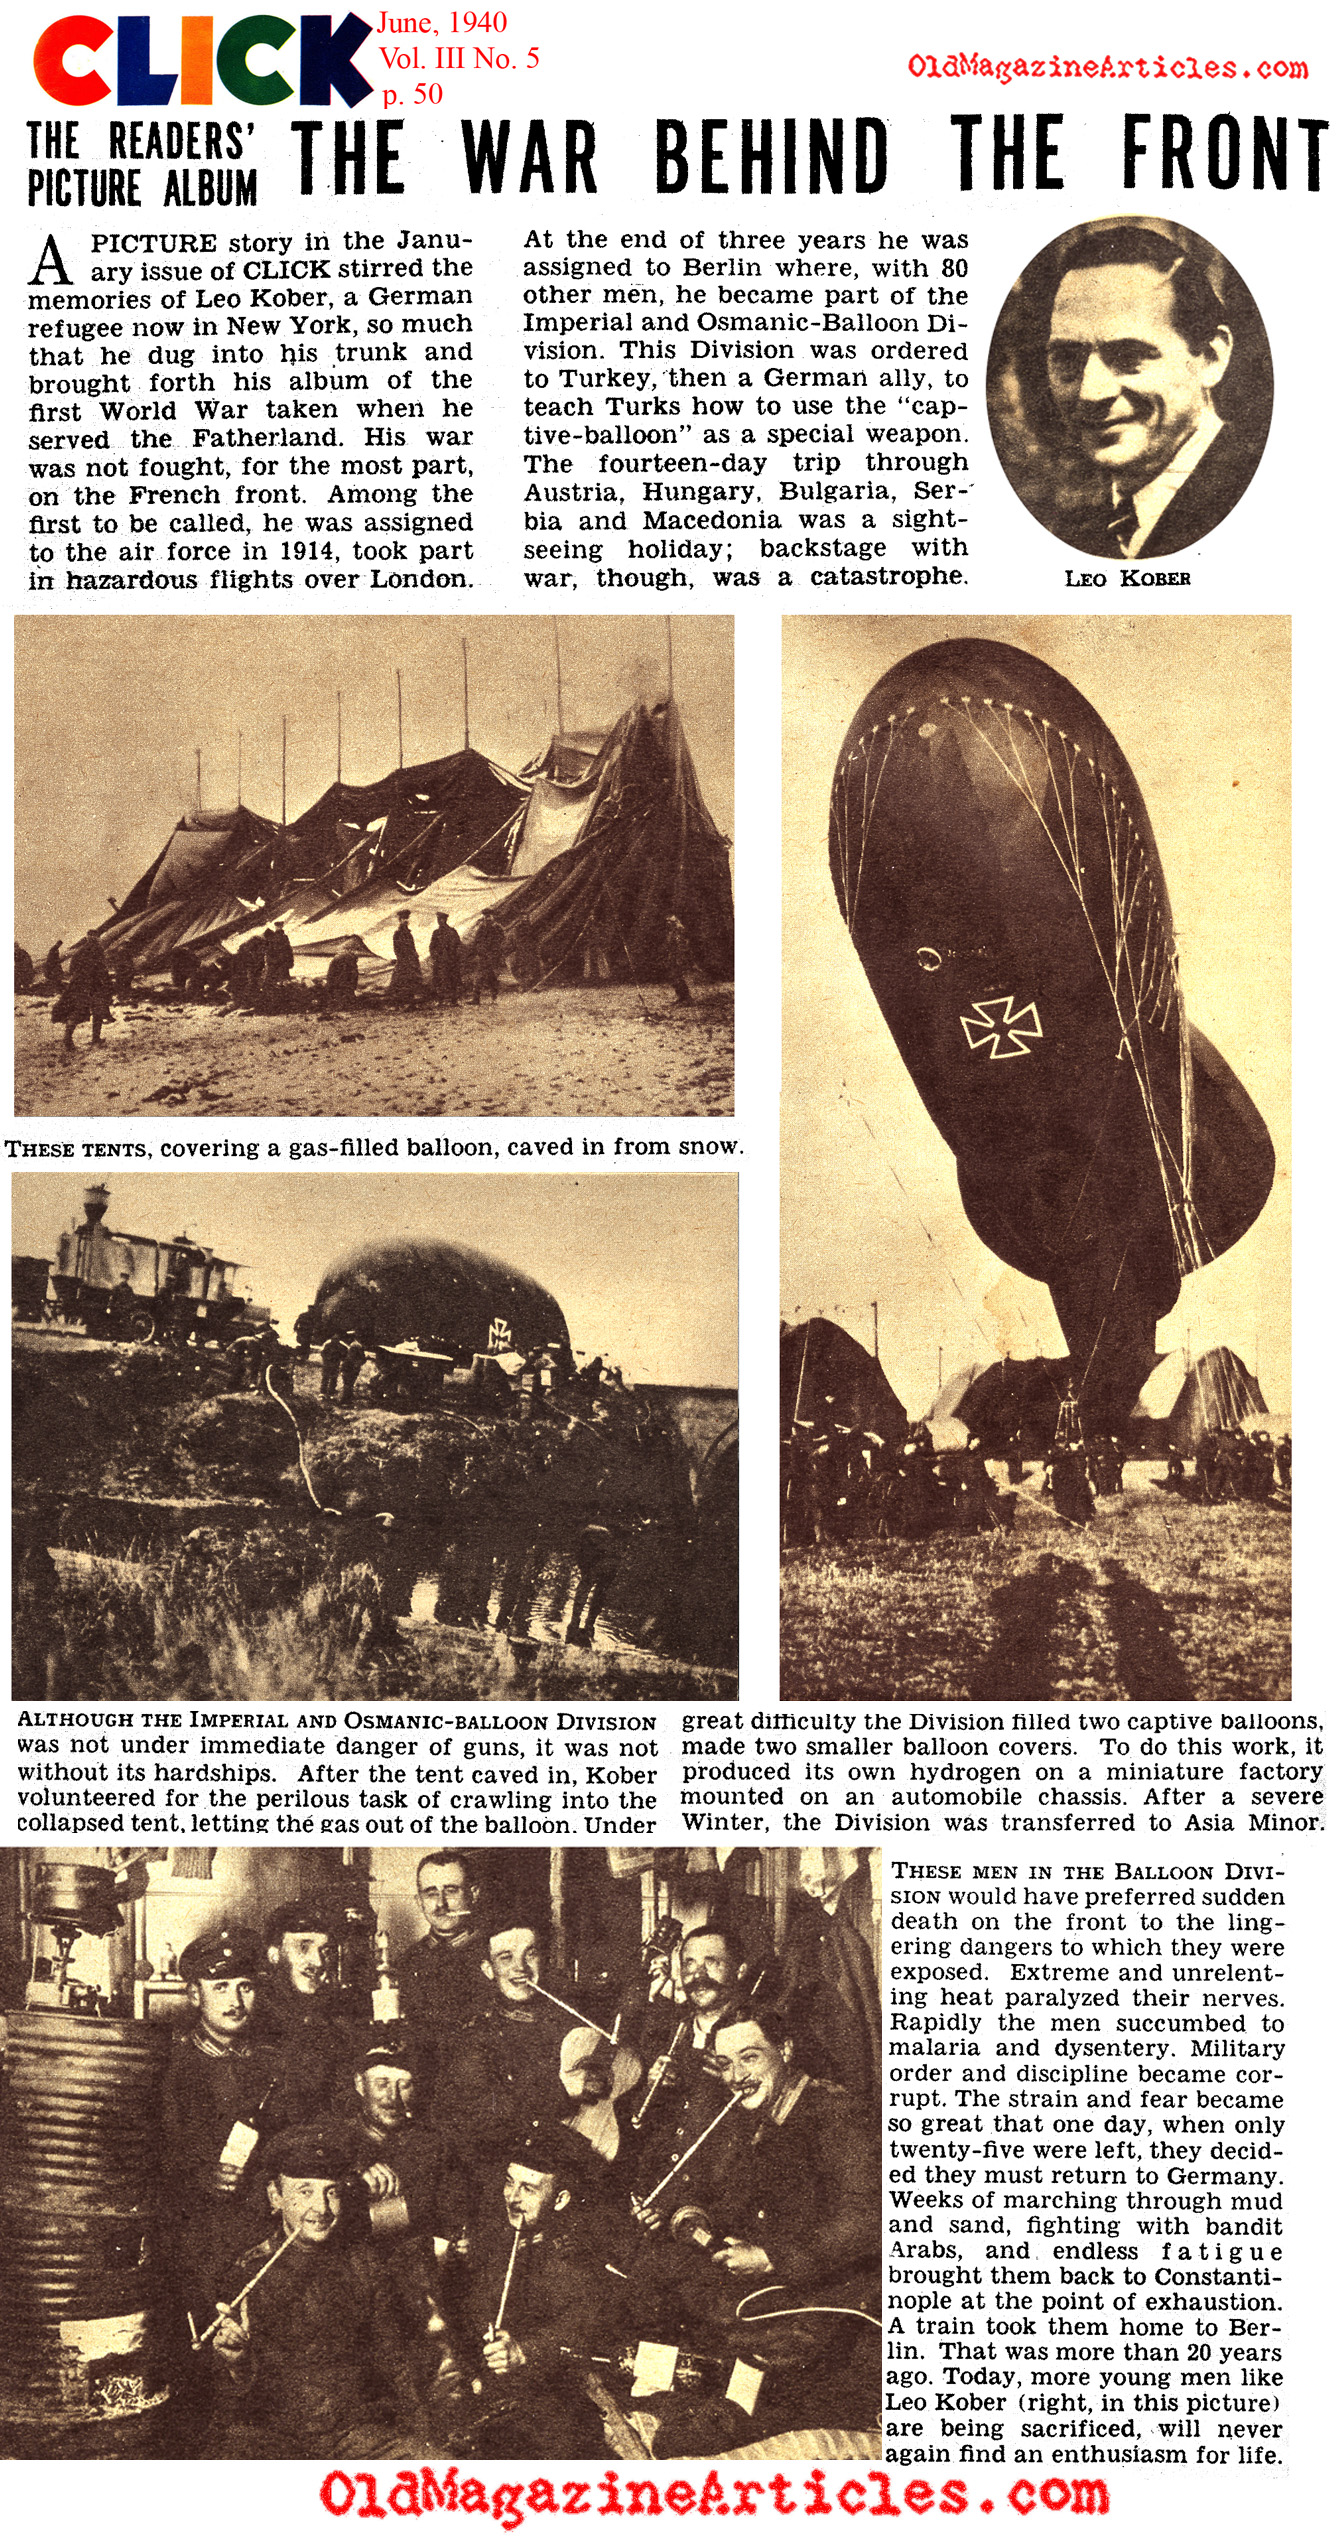 W.W. I Memories of the Imperial and Osmanic-Balloon Division (Click Magazine, 1940)